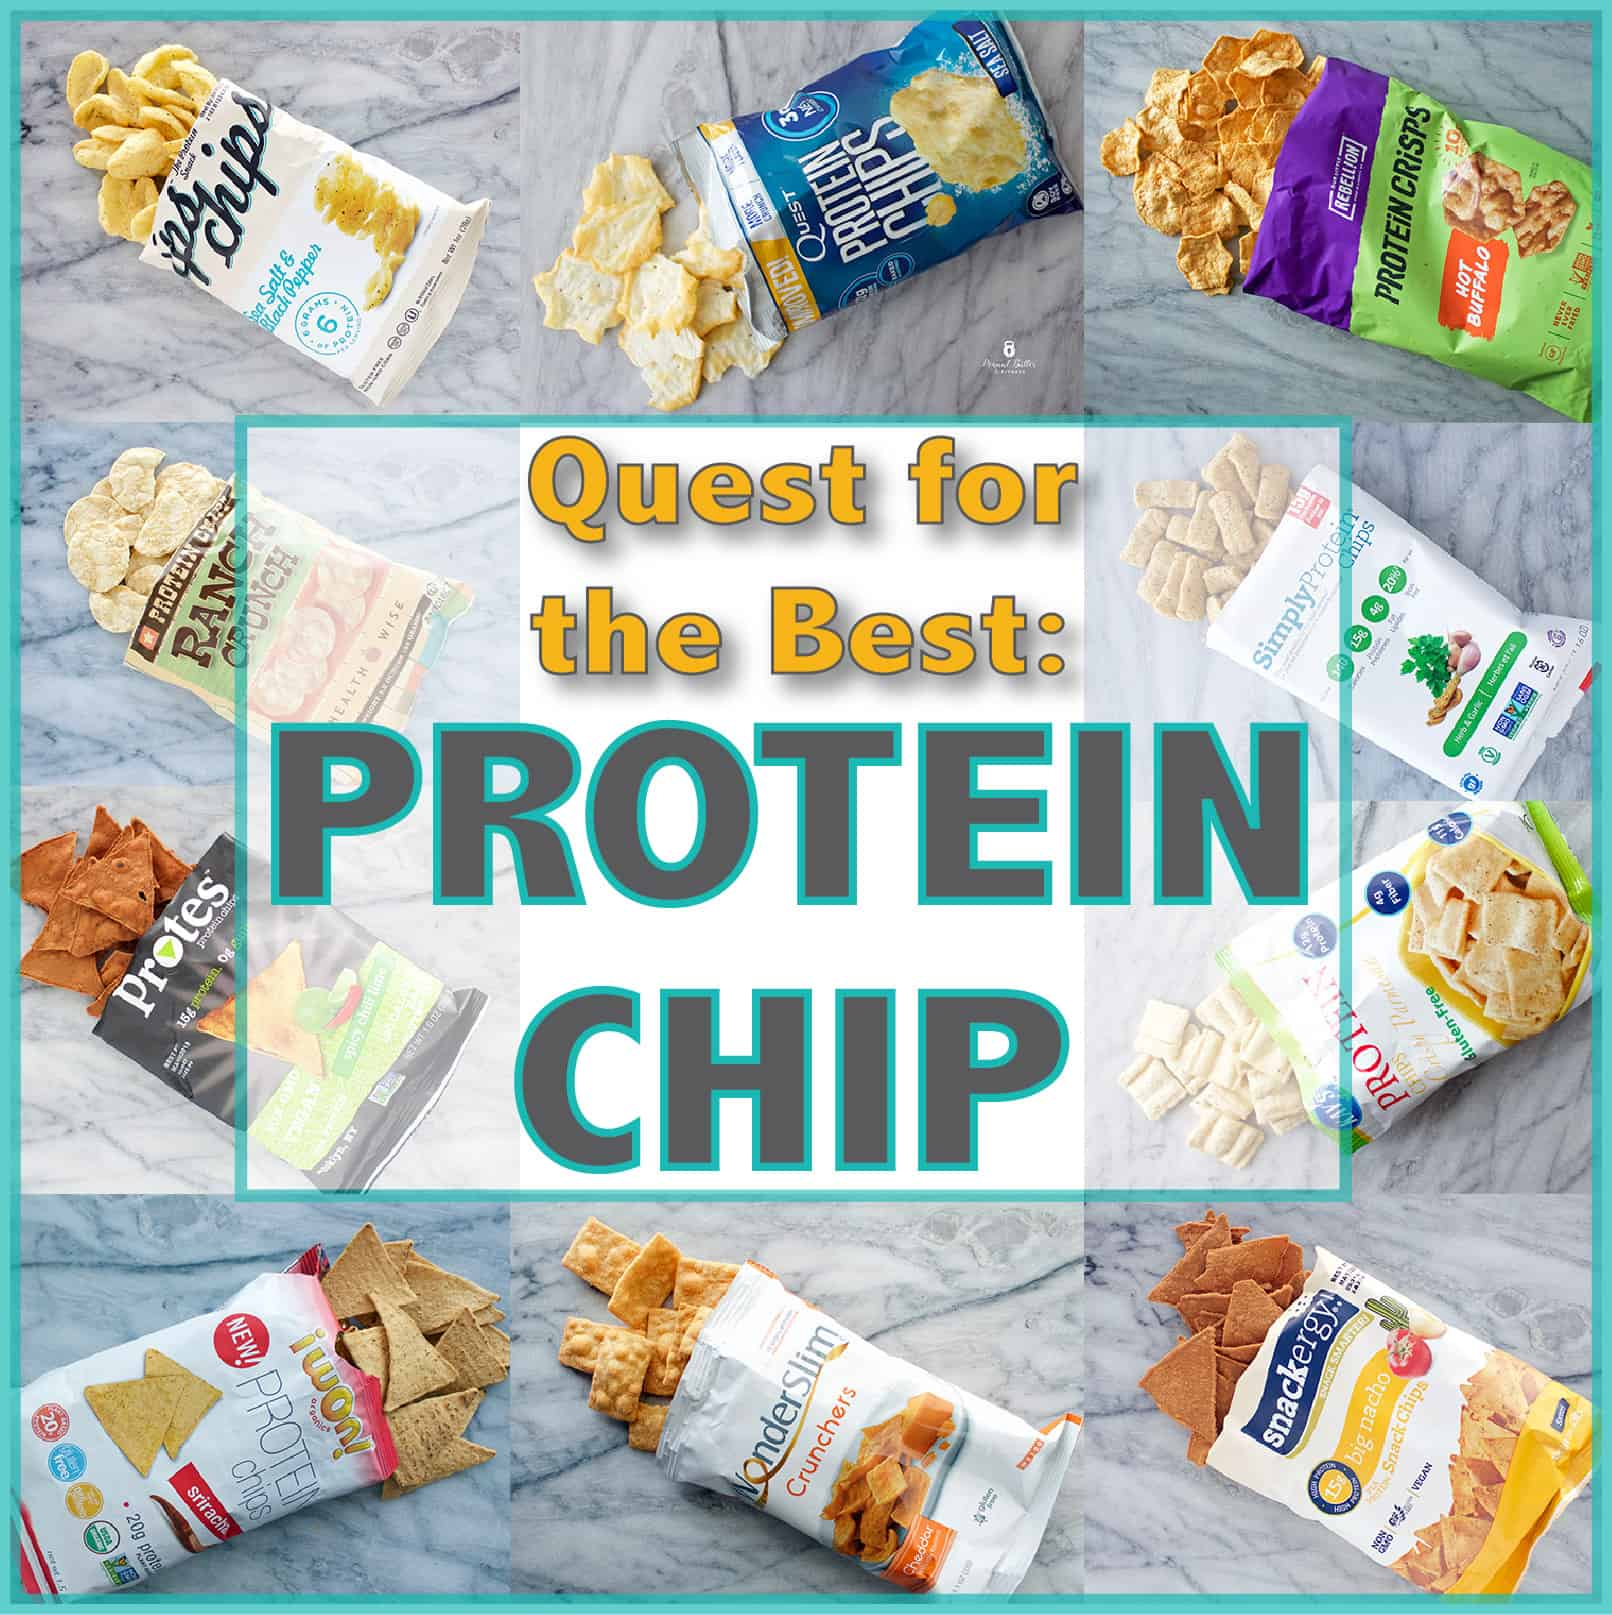 QUEST FOR BEST CHIP FEATURED IMAGE